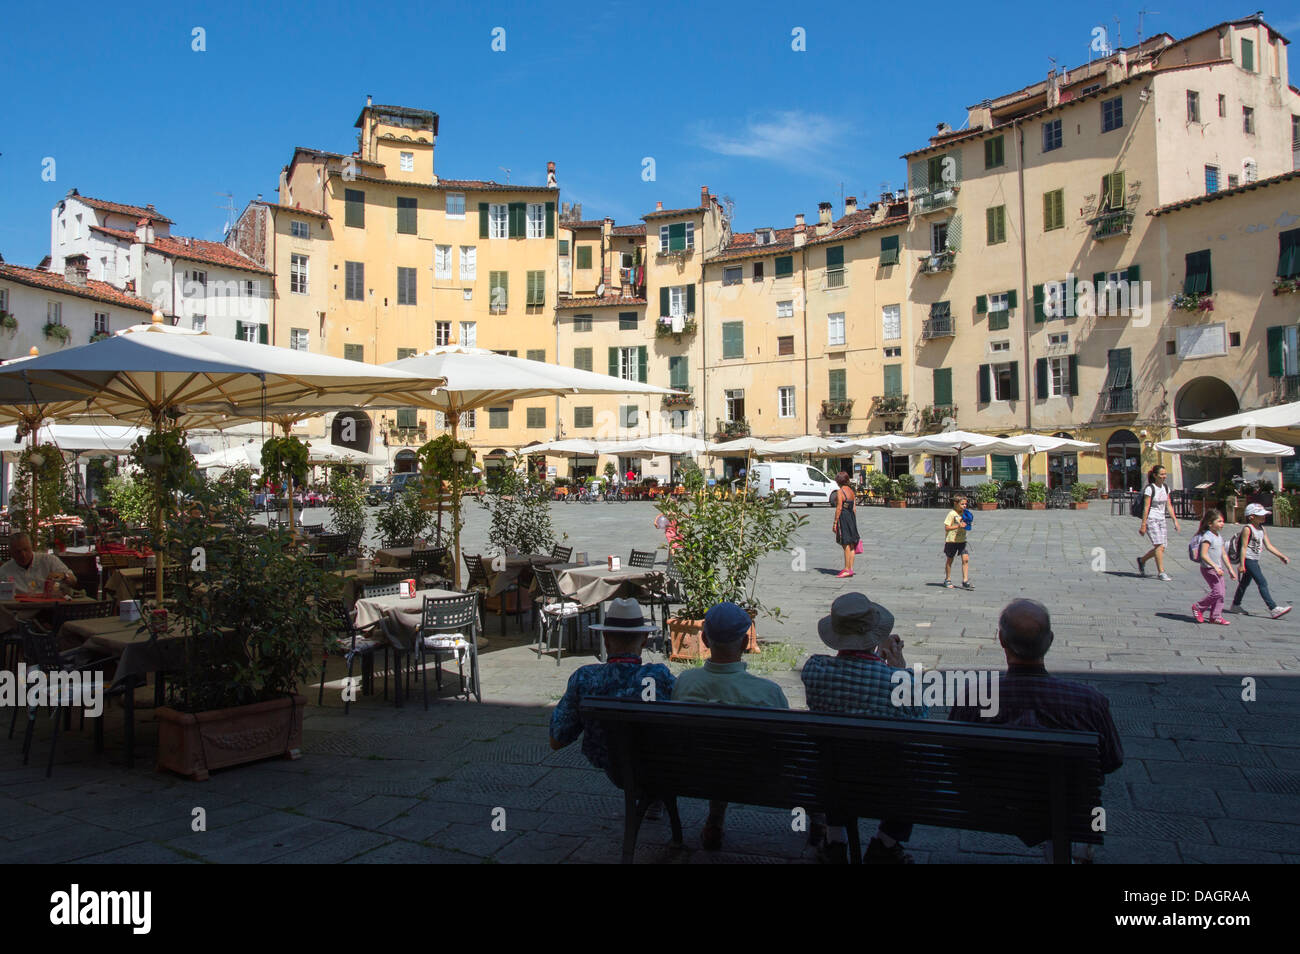 Piazza Anfiteatro, Lucca, Tuscany, Italy 2013 - Stock Image